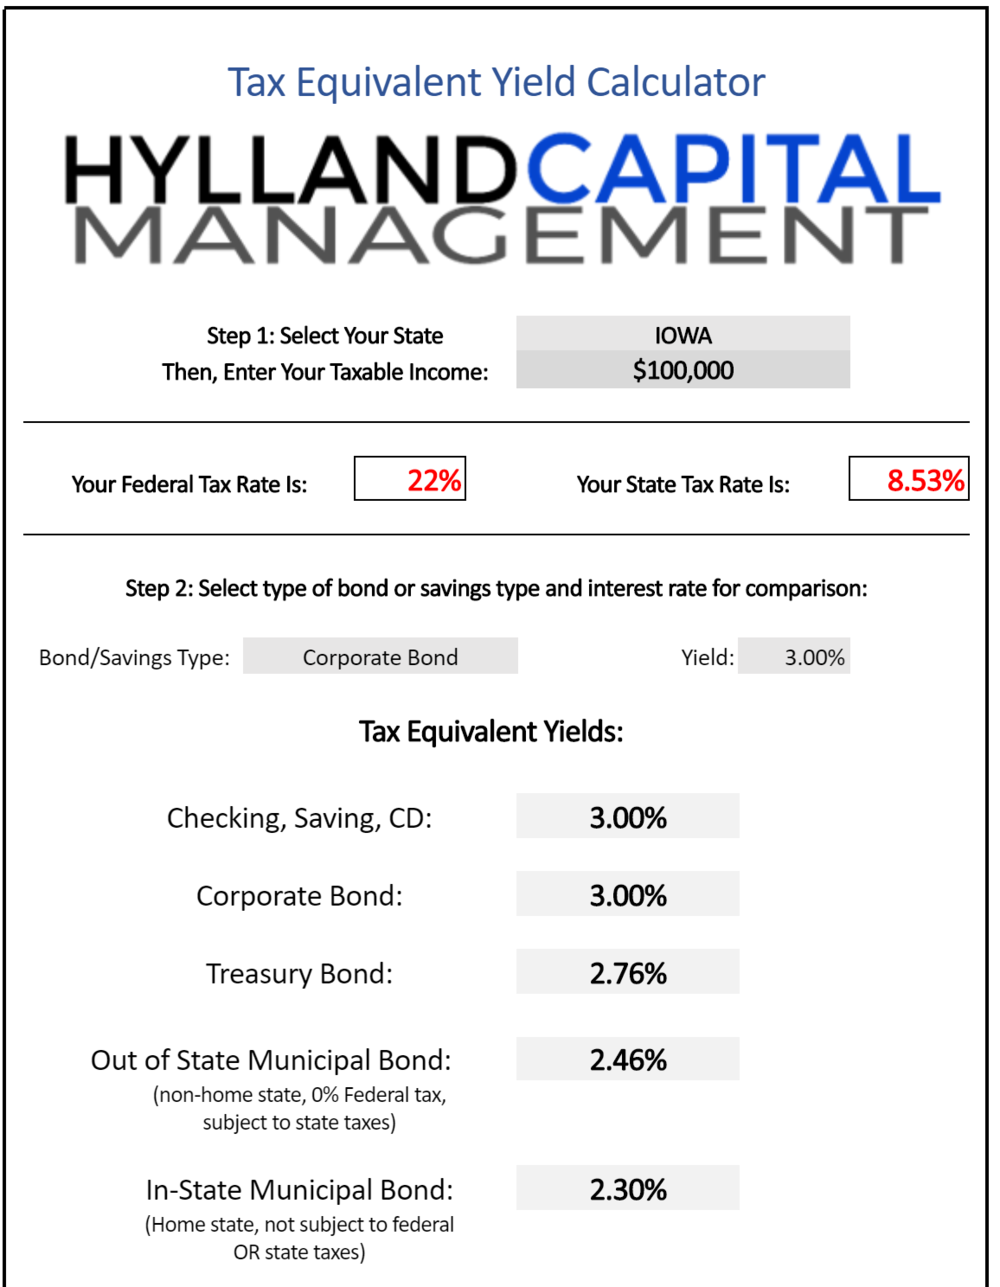 tax_equivalent_yield_calculator_2.png